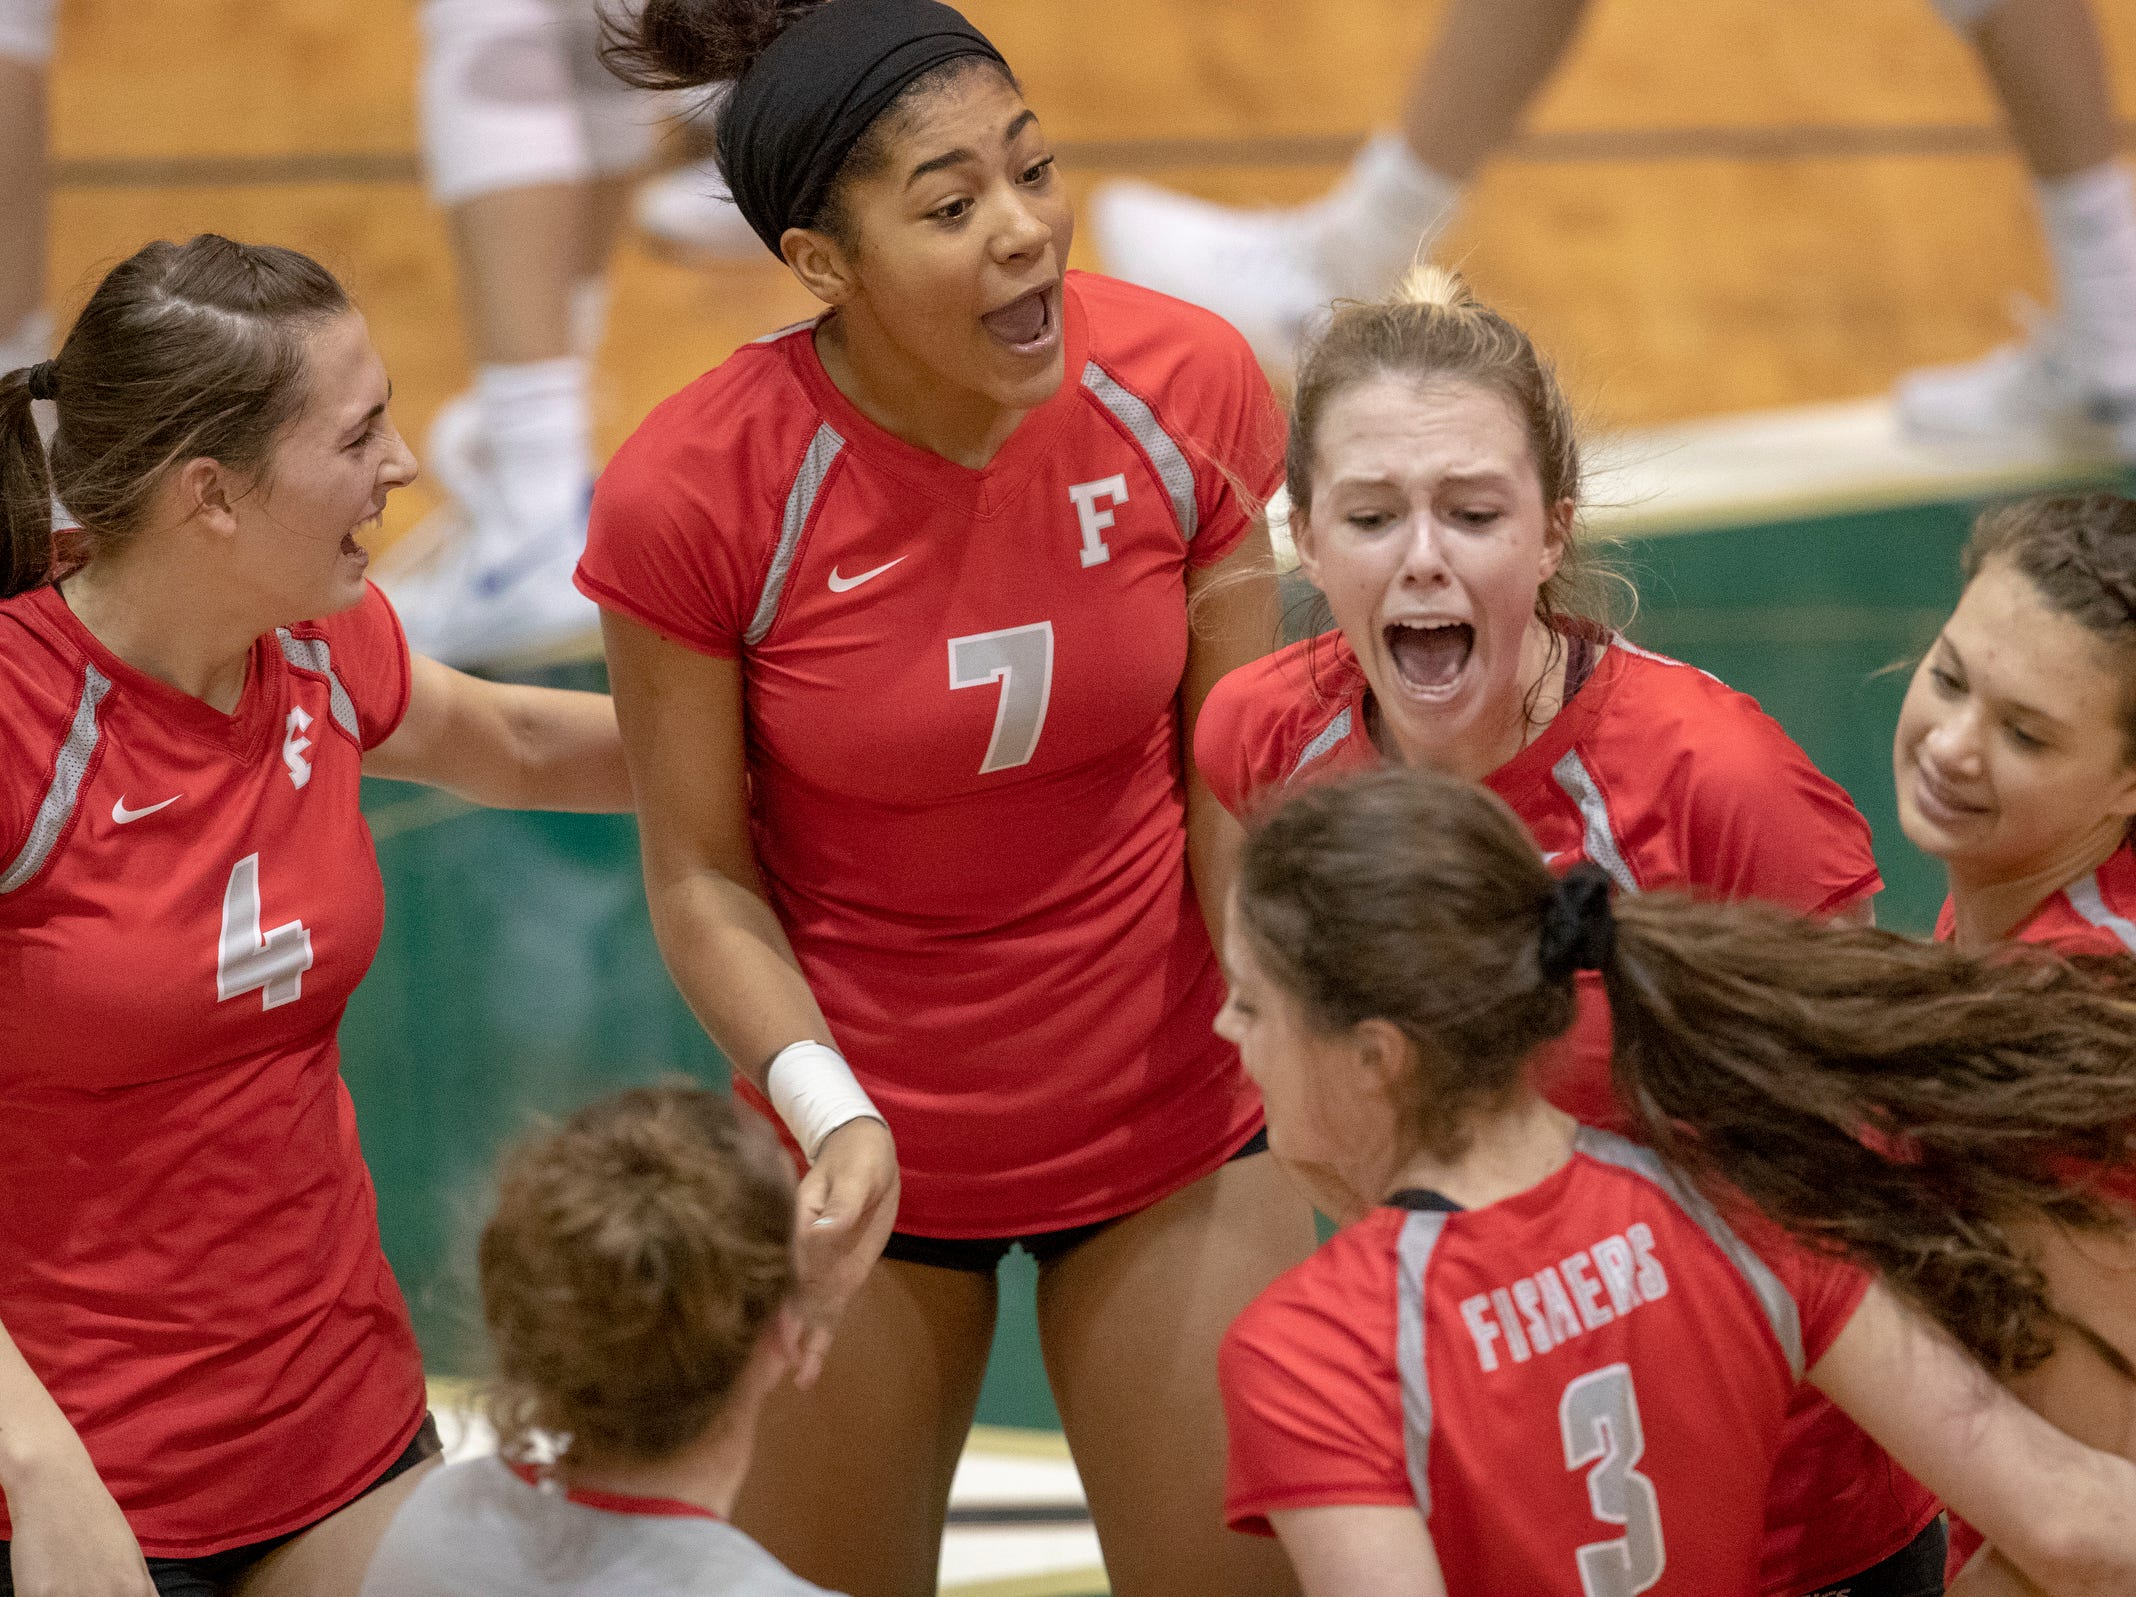 Fishers High School players celebrate during their win against Hamilton Southeastern High School in three straight sets in the first round of the volleyball sectional at Westfield High School, Westfield, Thursday, Oct. 11, 2018. The win matches them up with Westfield High School for a game on Saturday morning at 11a.m.